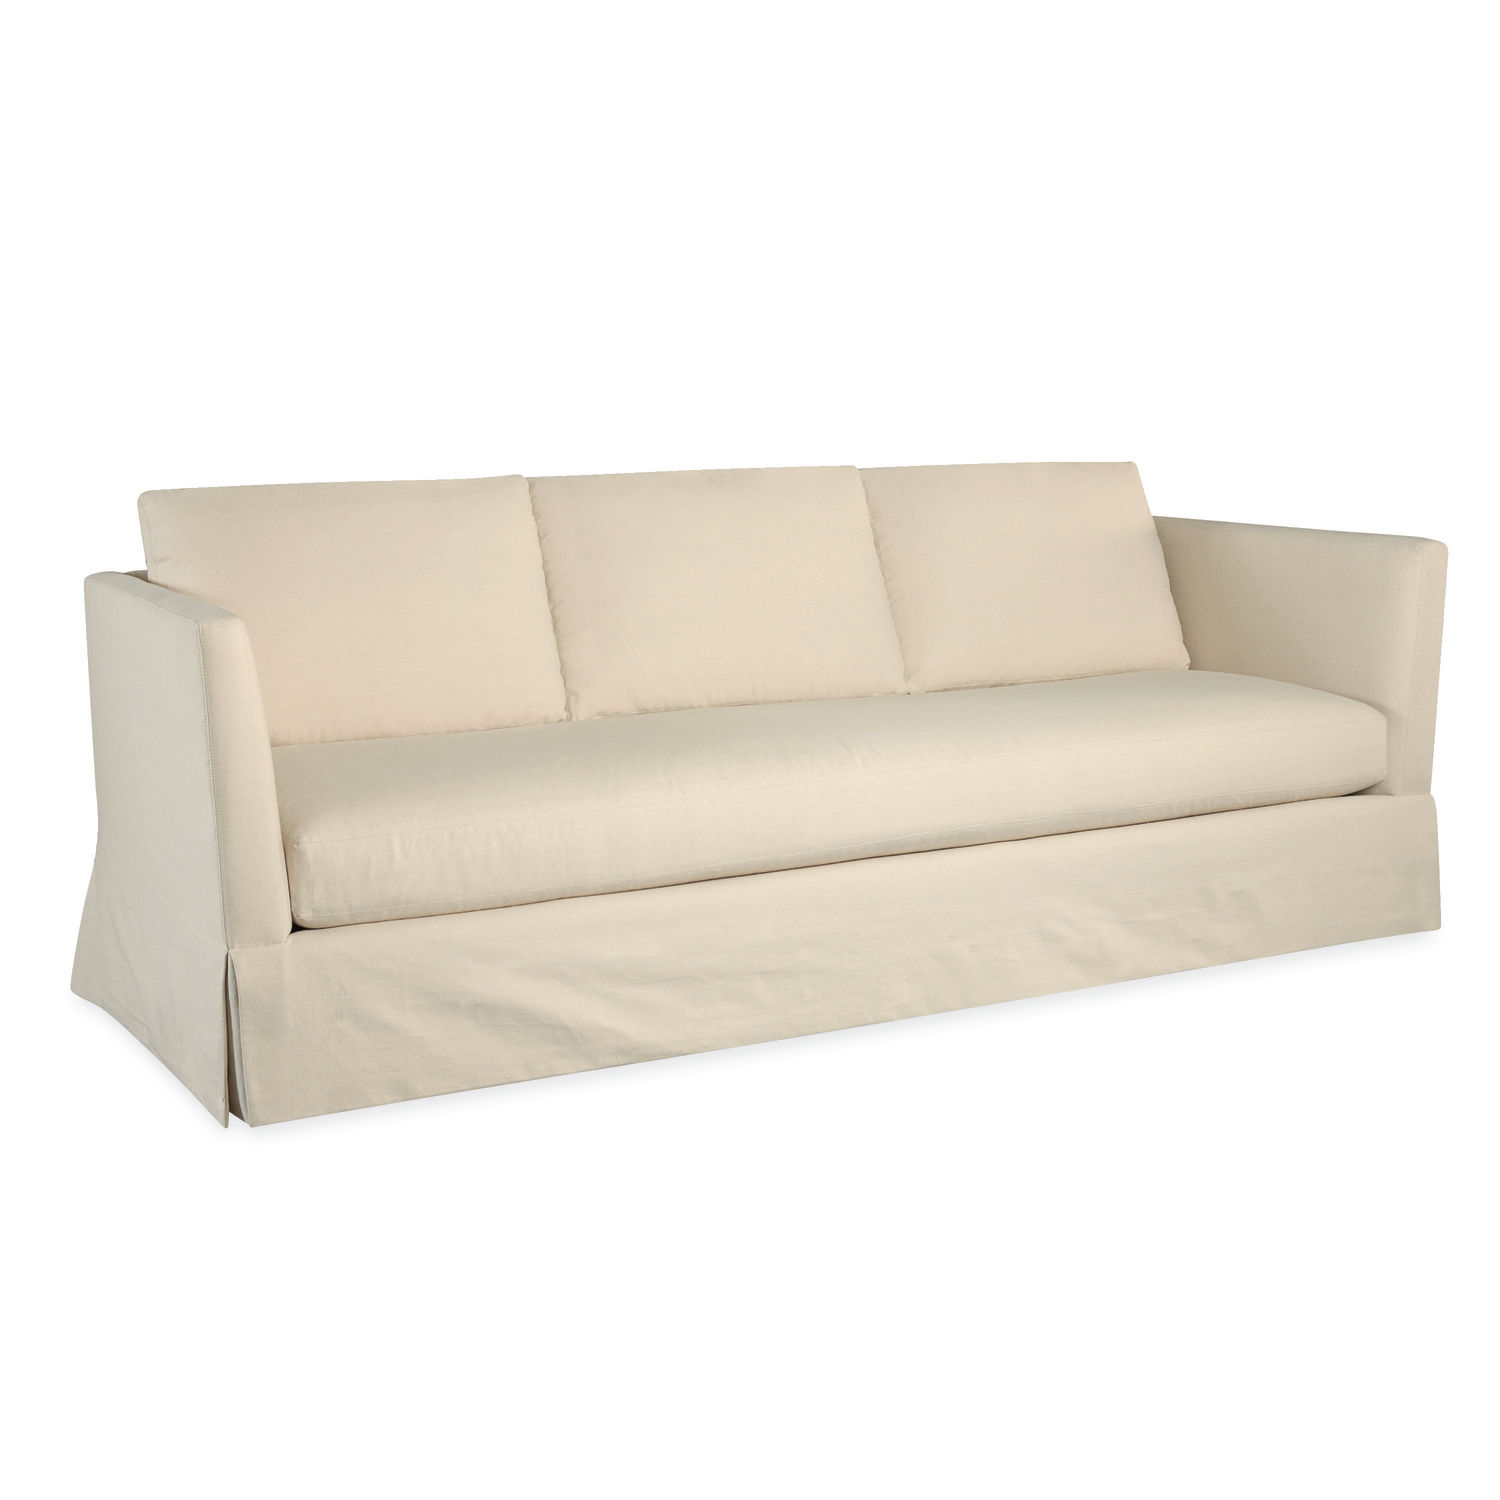 Fine Sofa Seat Cushions Pick The Perfect Depth The Stated Home Home Remodeling Inspirations Genioncuboardxyz